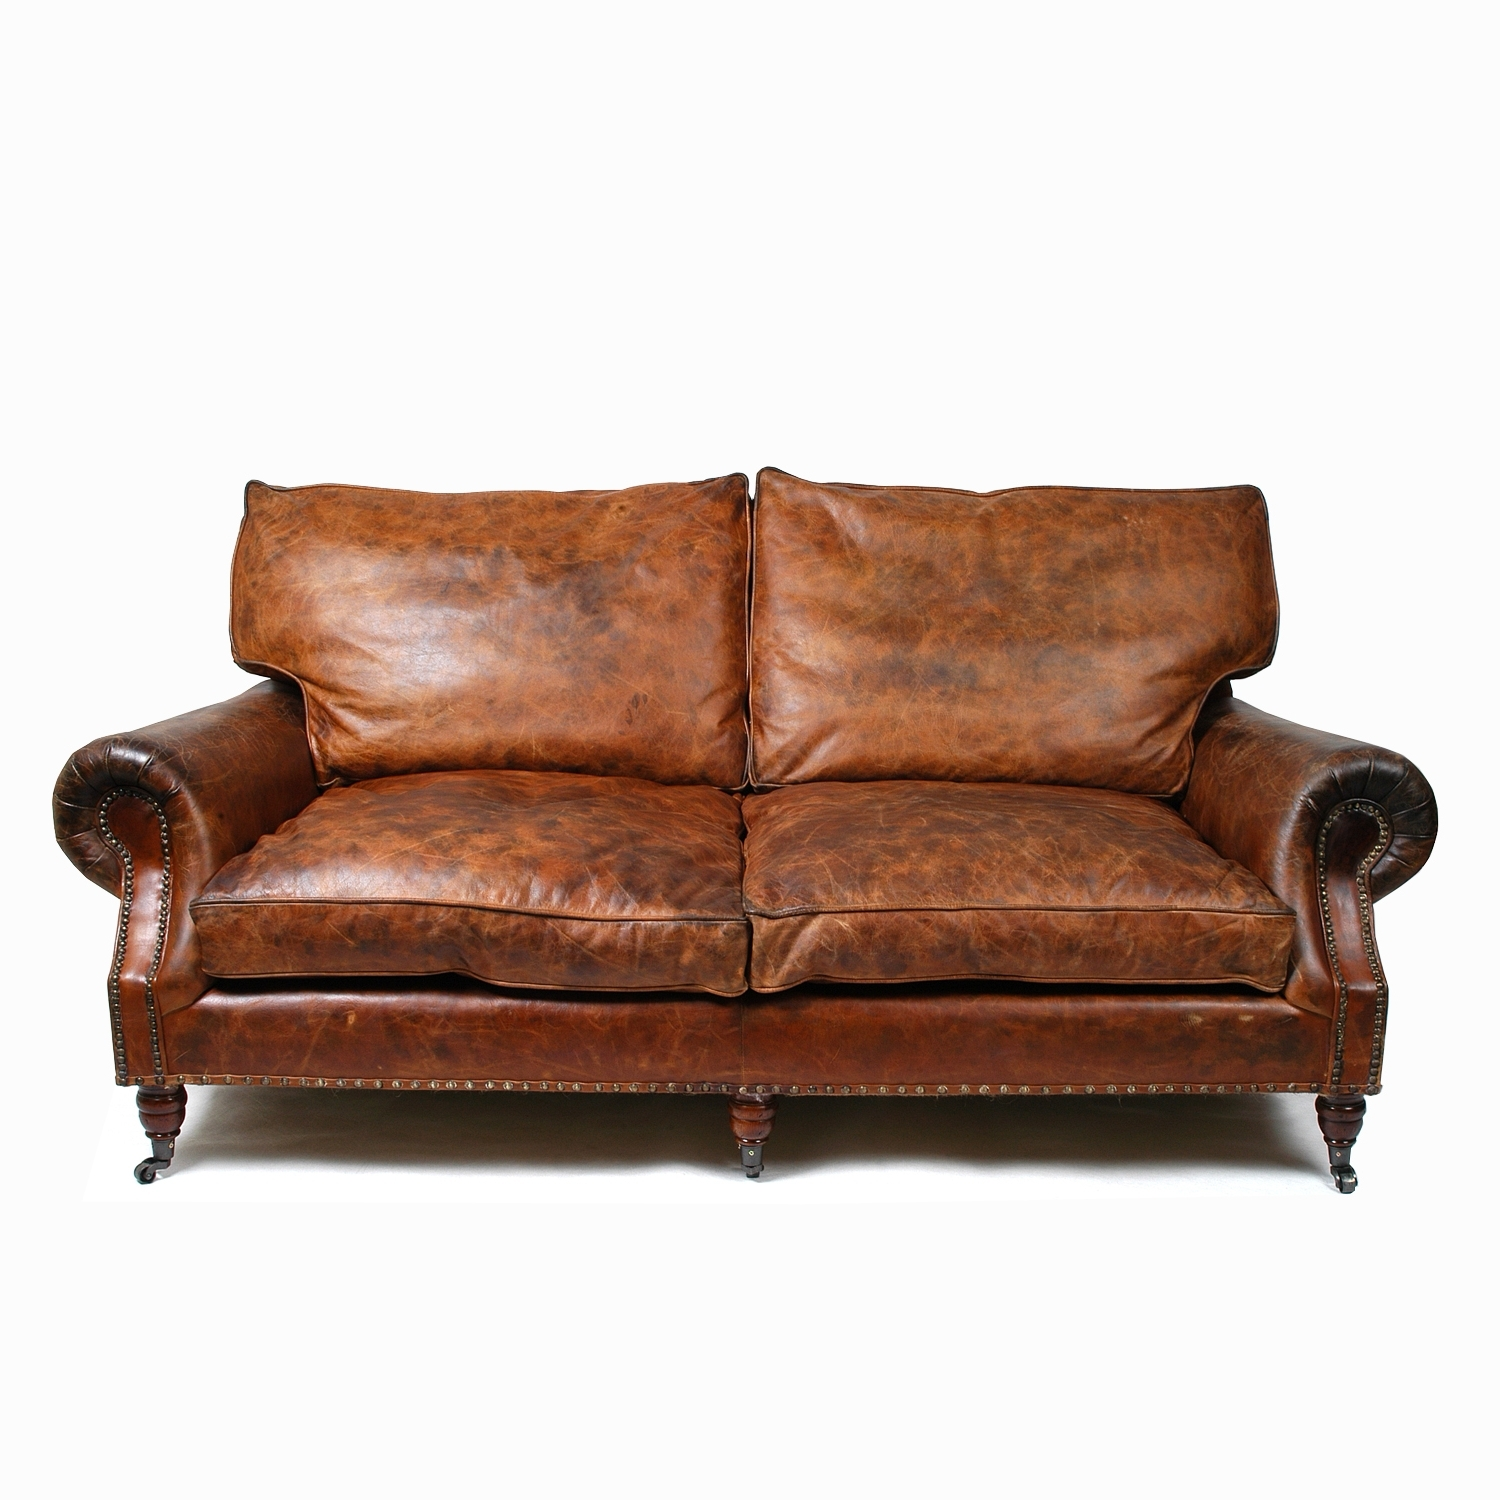 2018 Balmoral 3 Seater Sofa – Cigar Material: Uncorrected Aniline Pertaining To Aniline Leather Sofas (View 2 of 20)